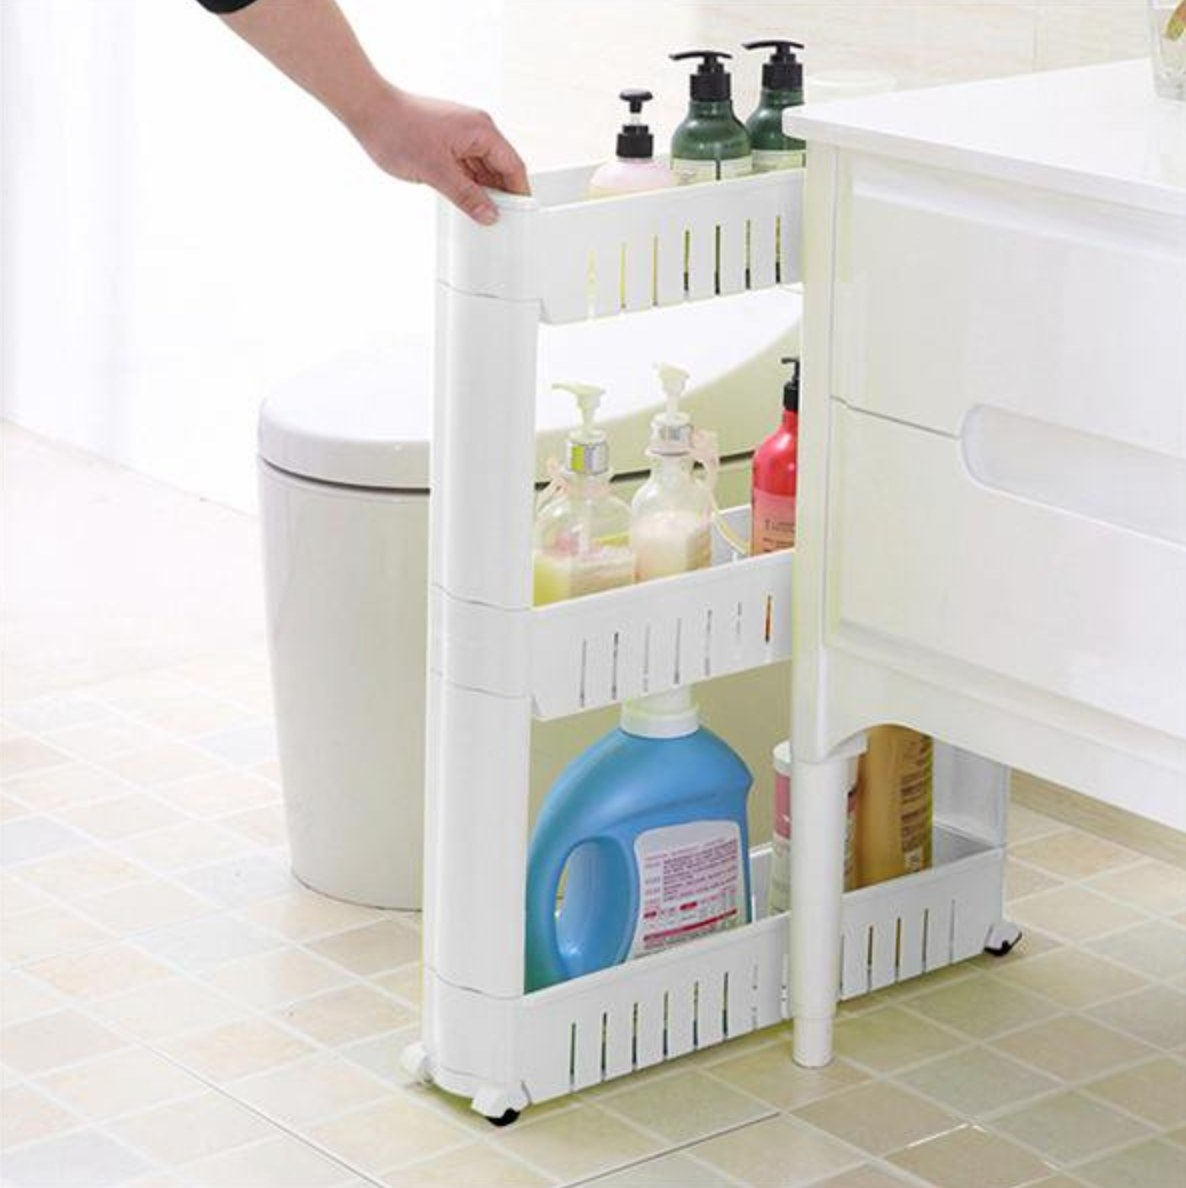 The white organizer being used as a caddy for bathroom productrs